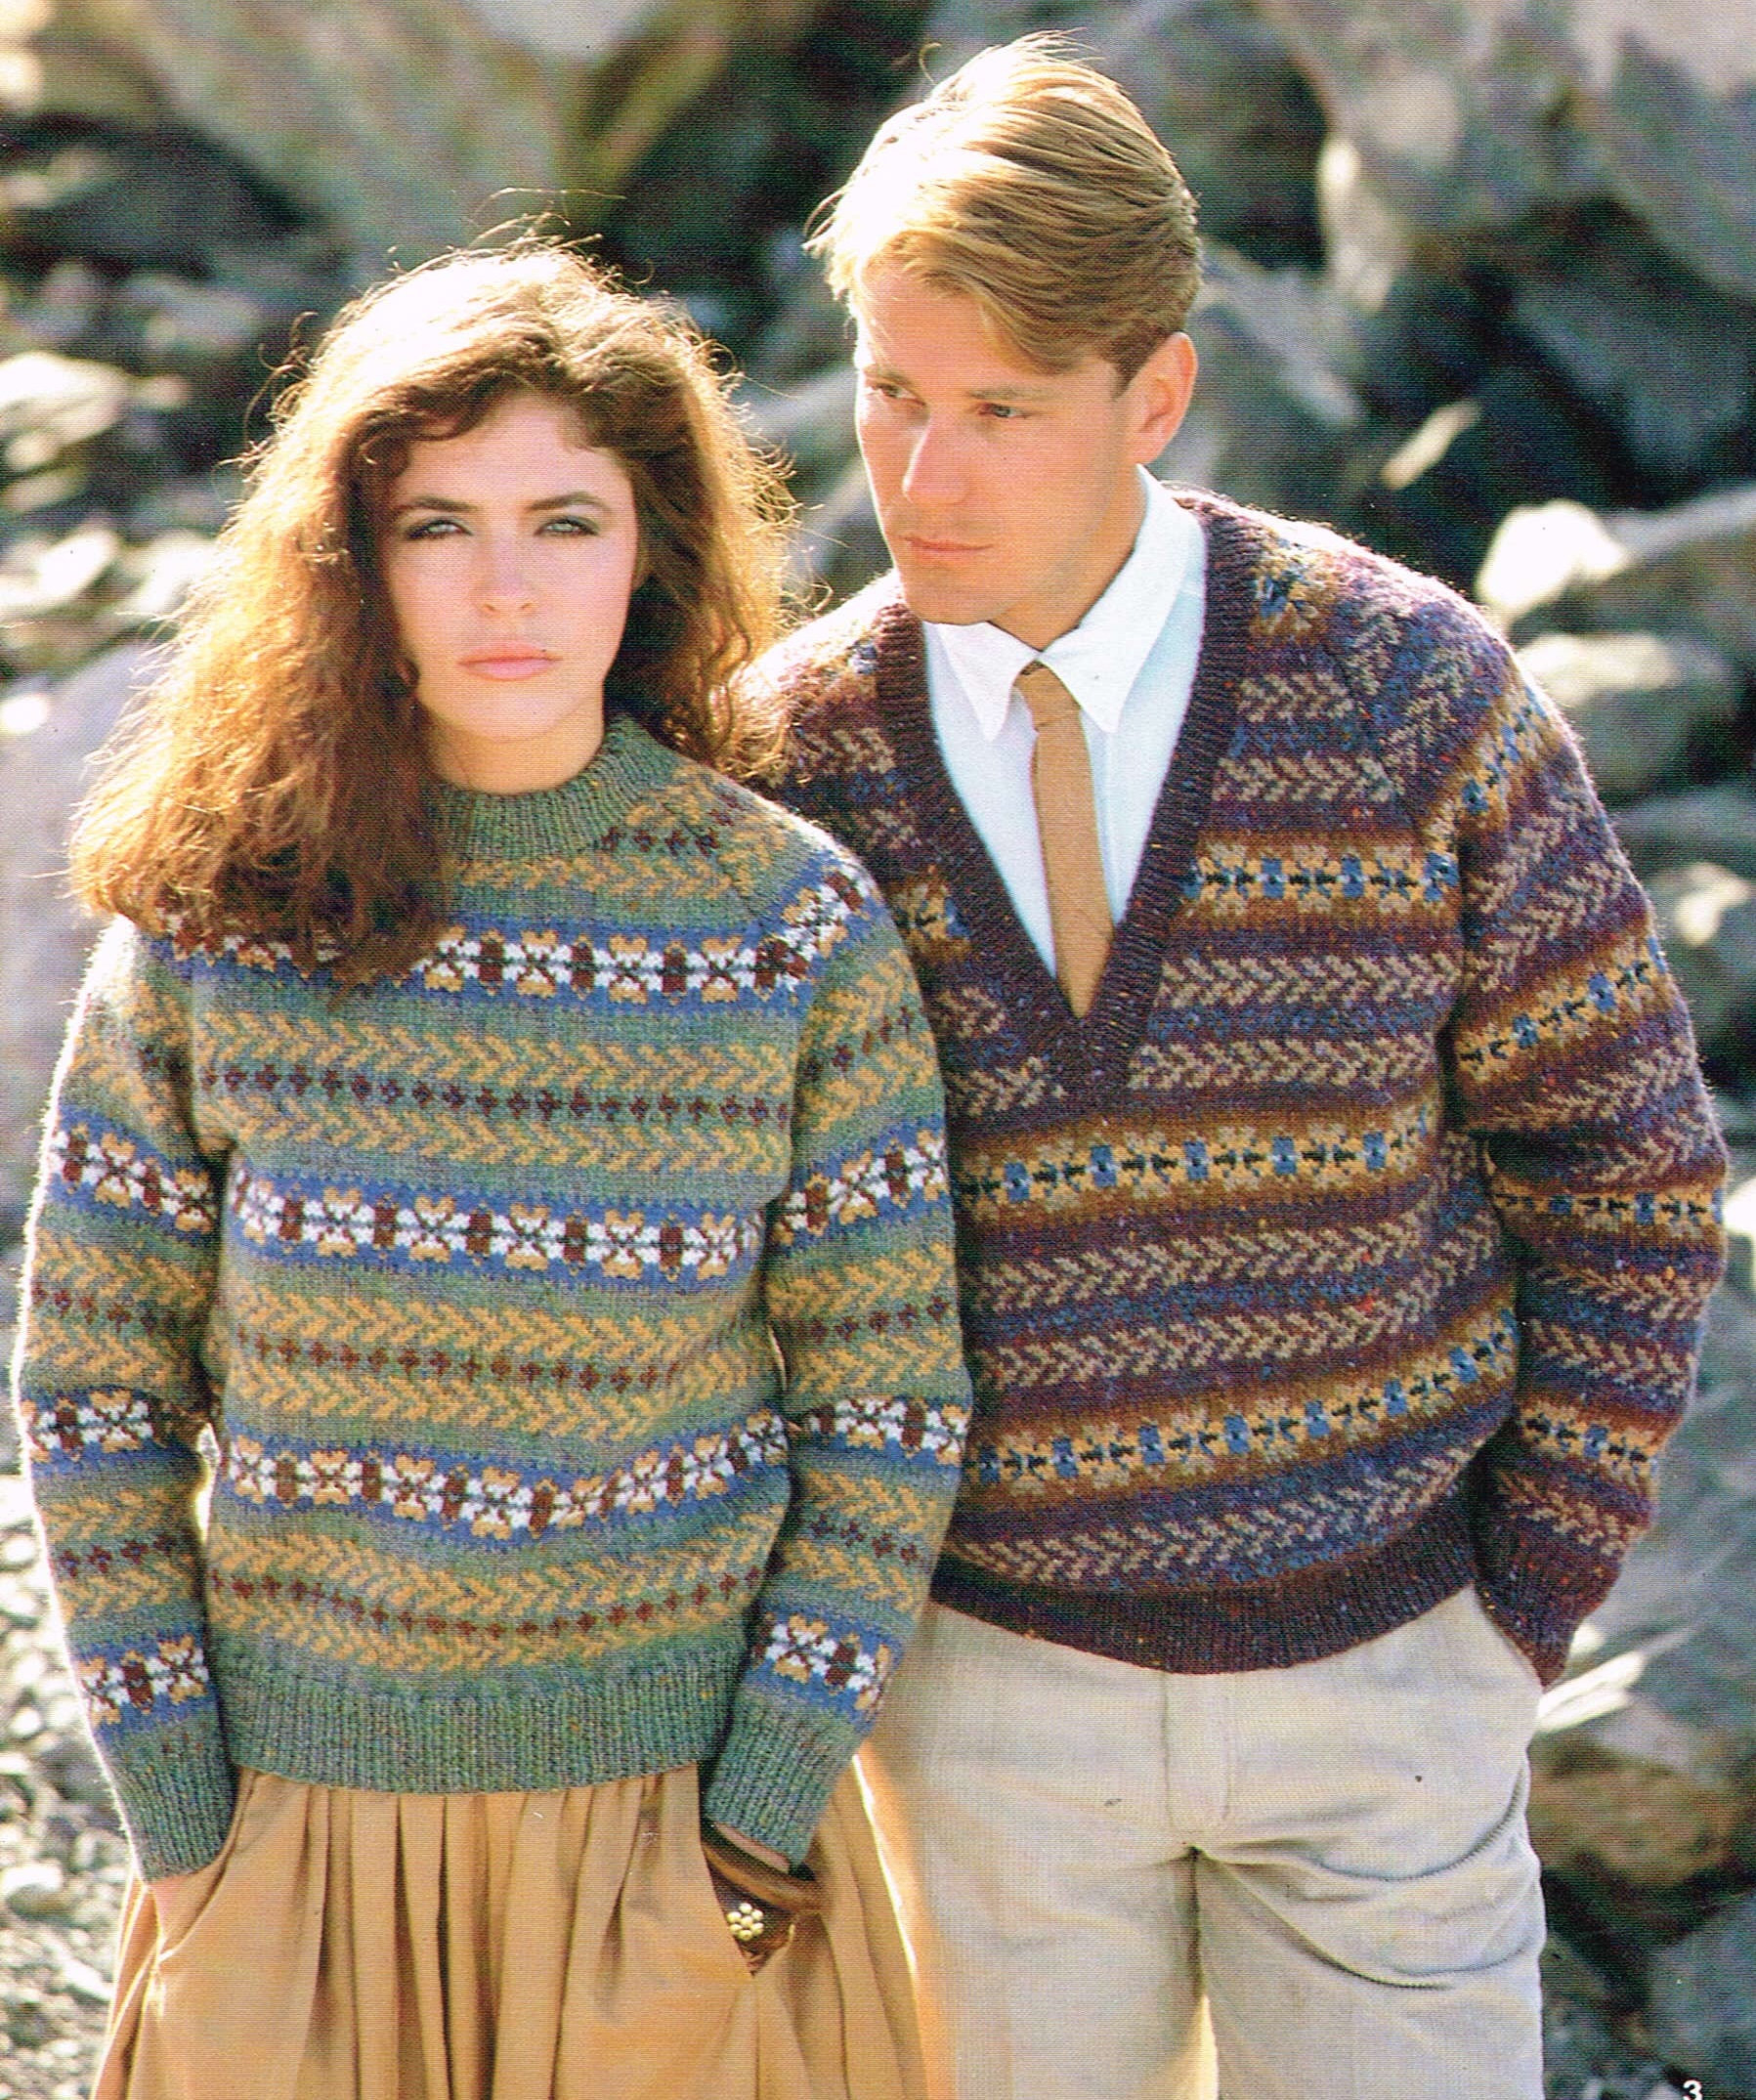 Mens Knitting Patterns Vintage Knitting Pattern For Mens And Womens Fair Isle Sweaters Pdf Download 80s Retro Pullover